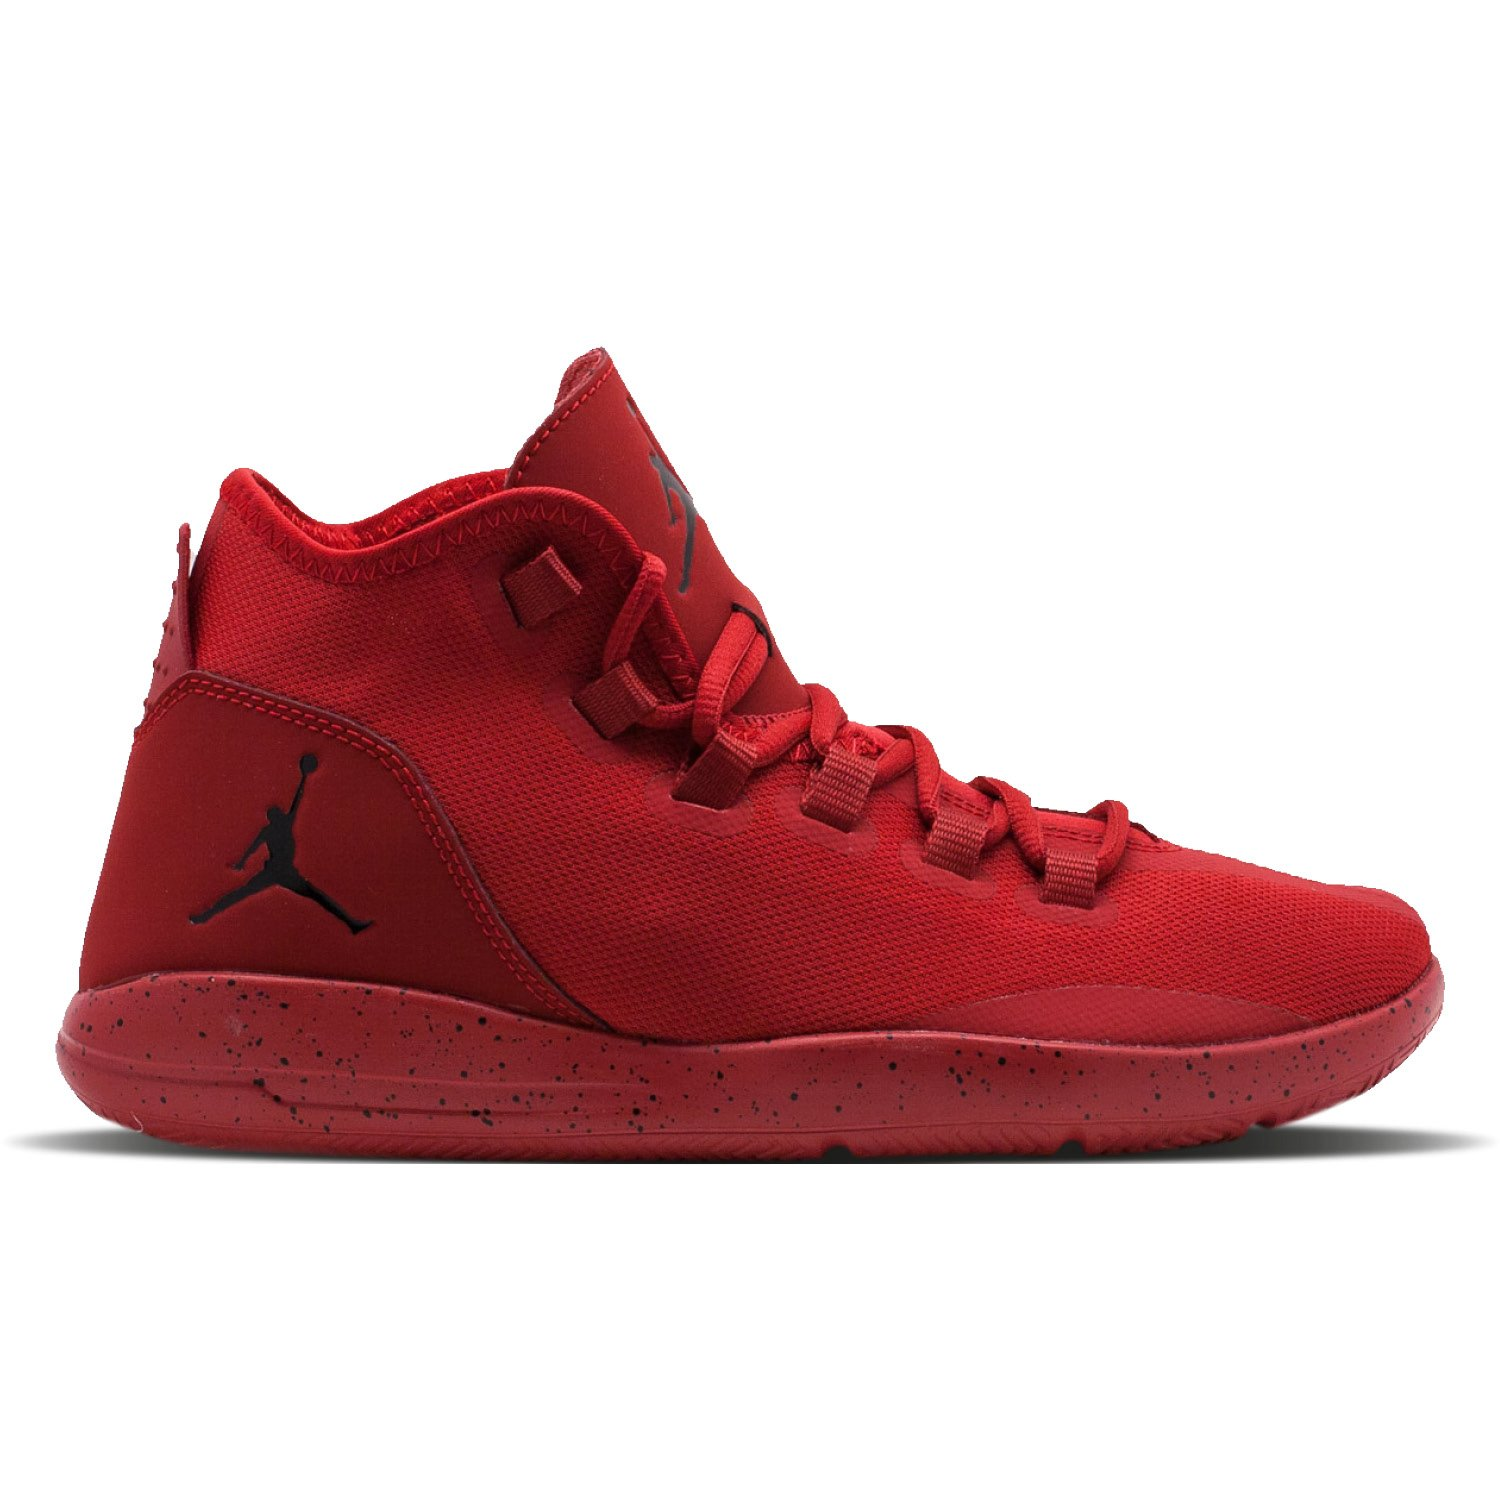 Jordan Reveal Gym Red 834064 601